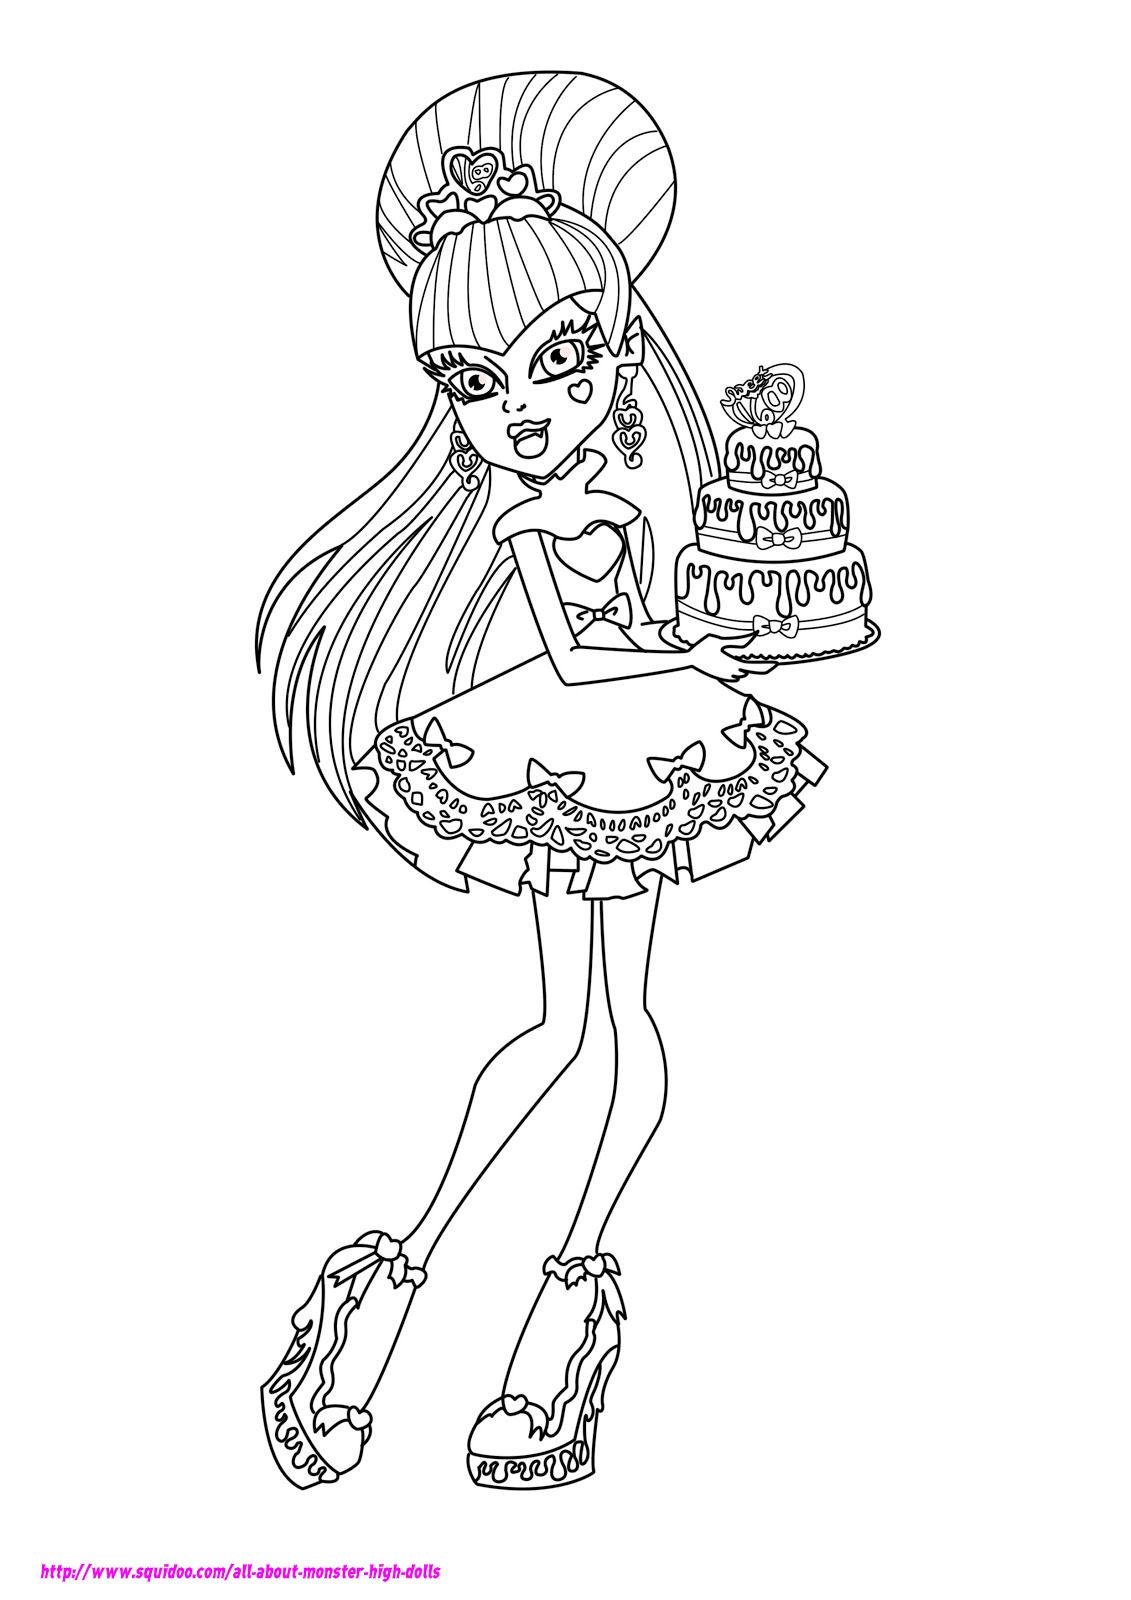 coloring pages monster high värityskuva coloriage ever after high madeline hatter coloriages à pages high coloring monster värityskuva